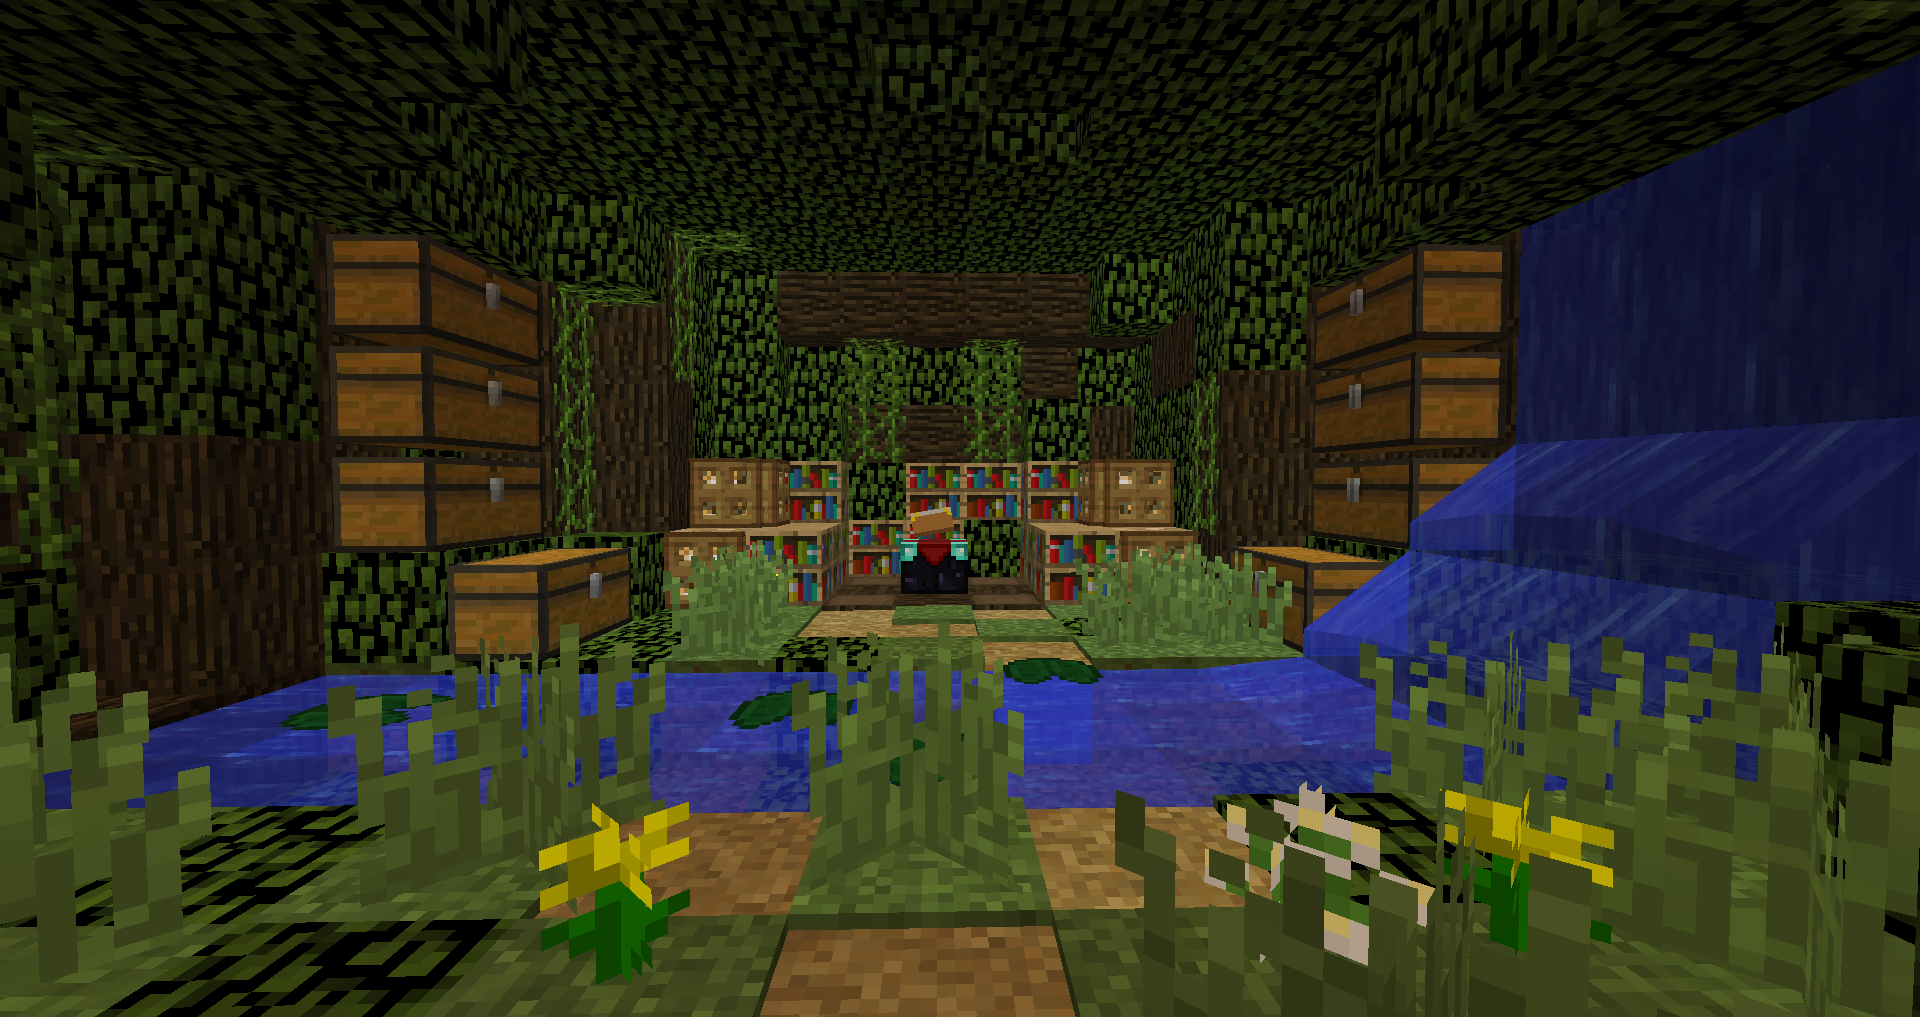 Minecraft Enchanting Room Designs